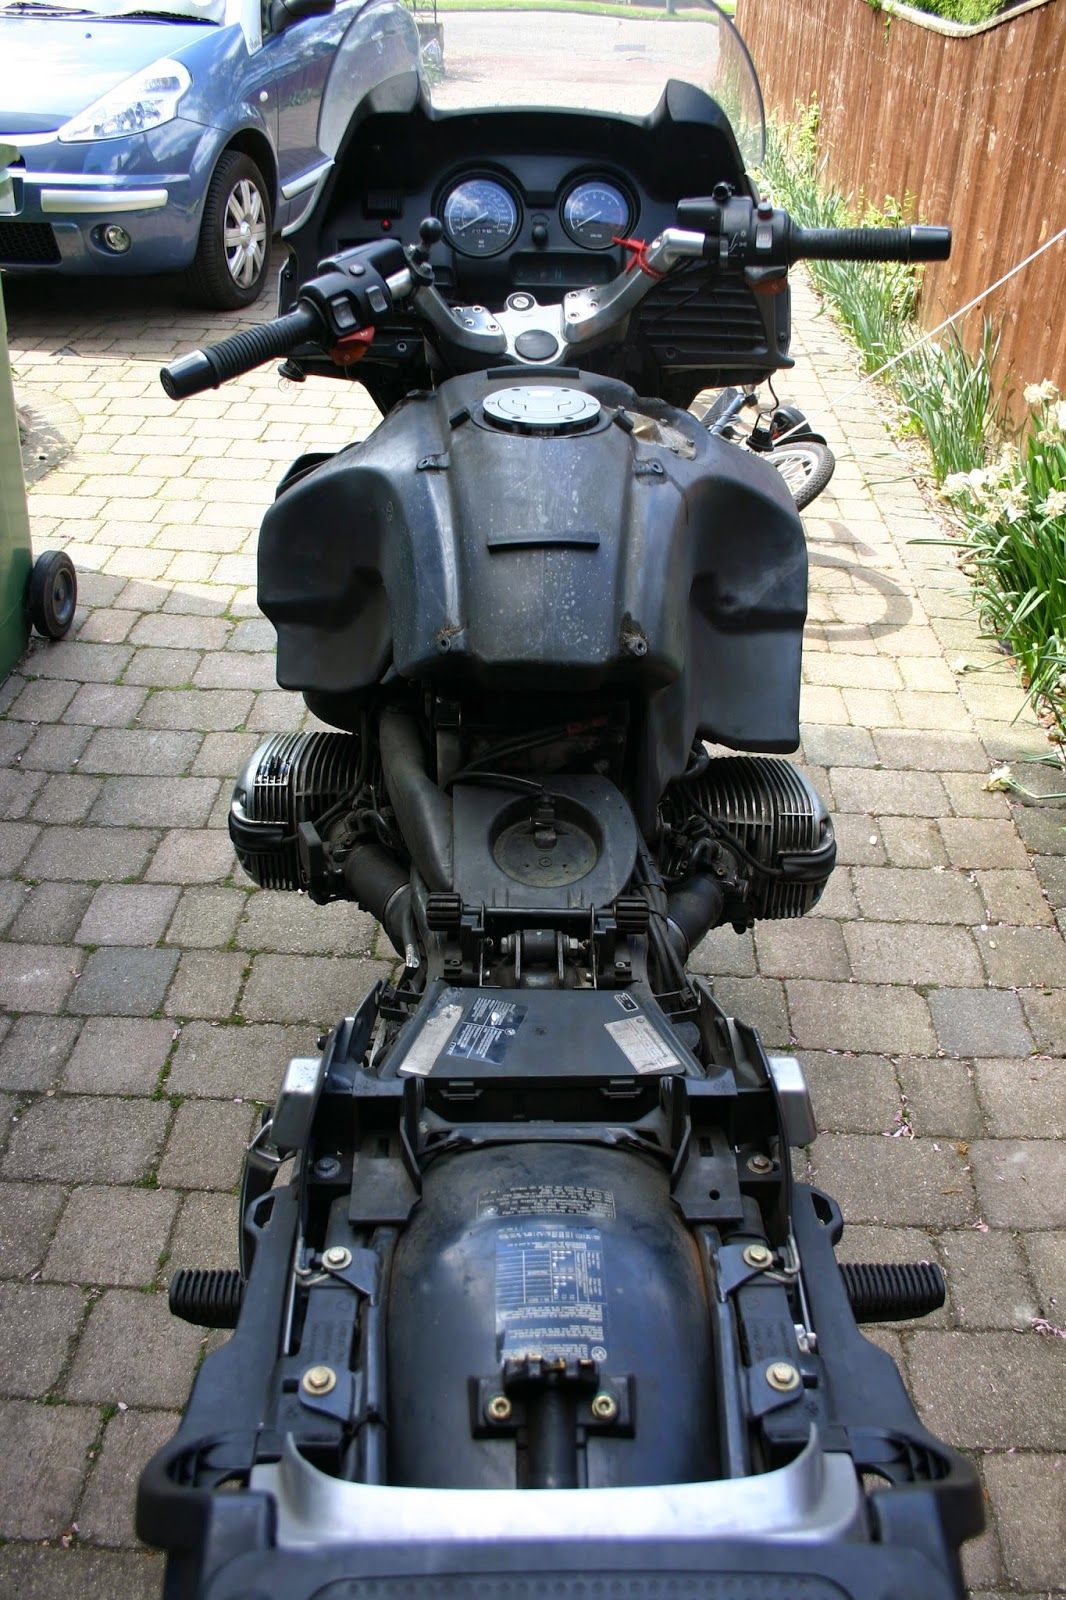 small resolution of bmw r1150rt undressed bmw r1200rt bmw motorcycles custom motorcycles motorcycle bike motorbikes